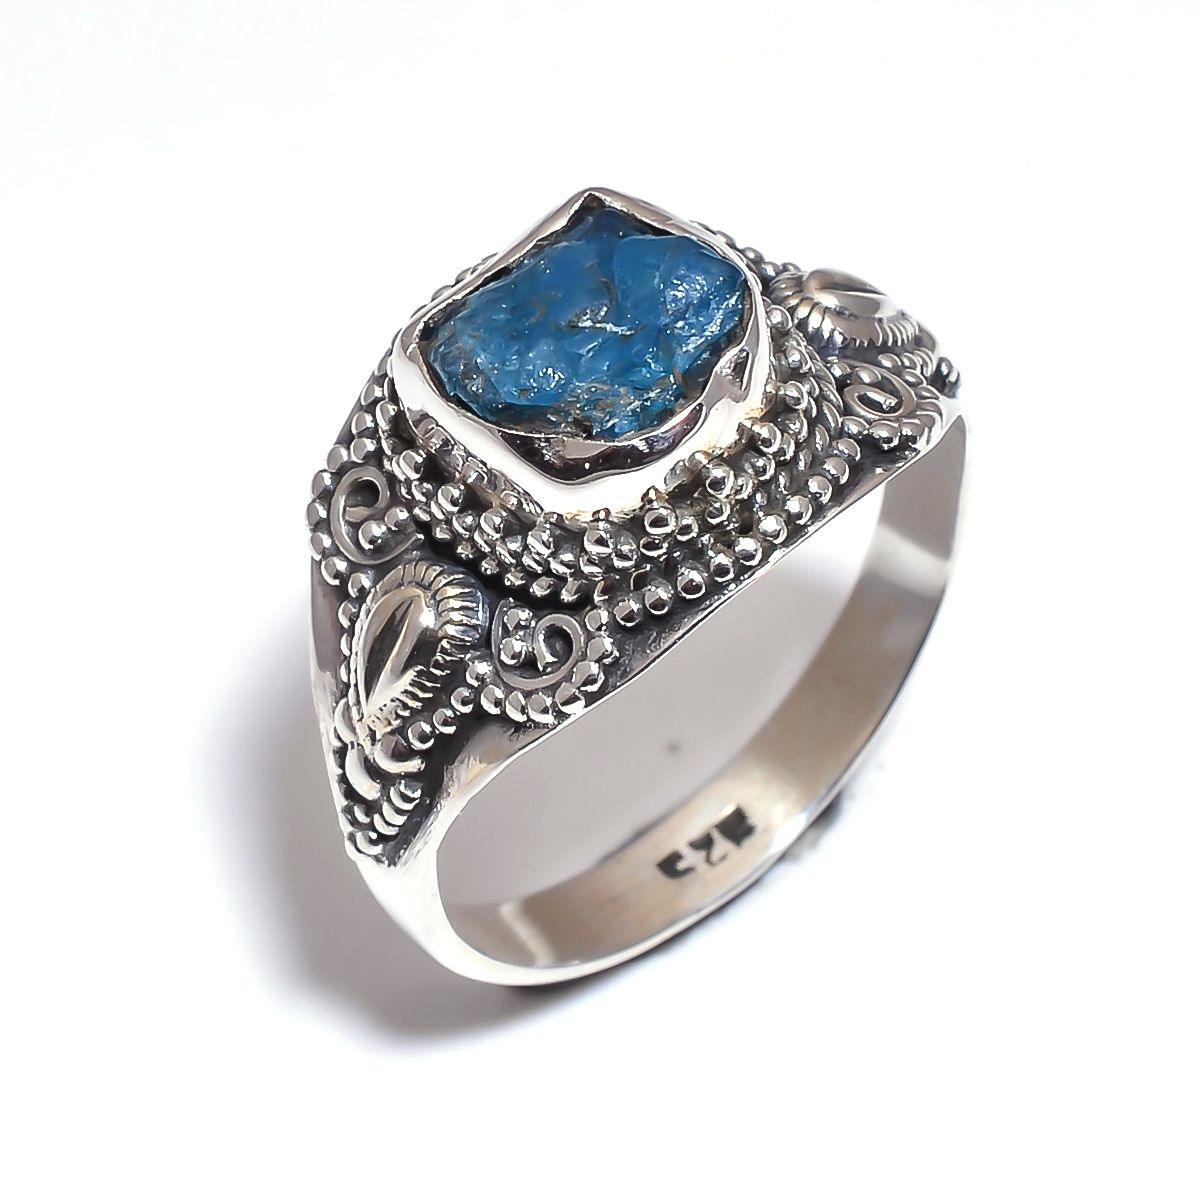 Neon Apatite Raw Gemstone 925 Sterling Silver Ring Size 9